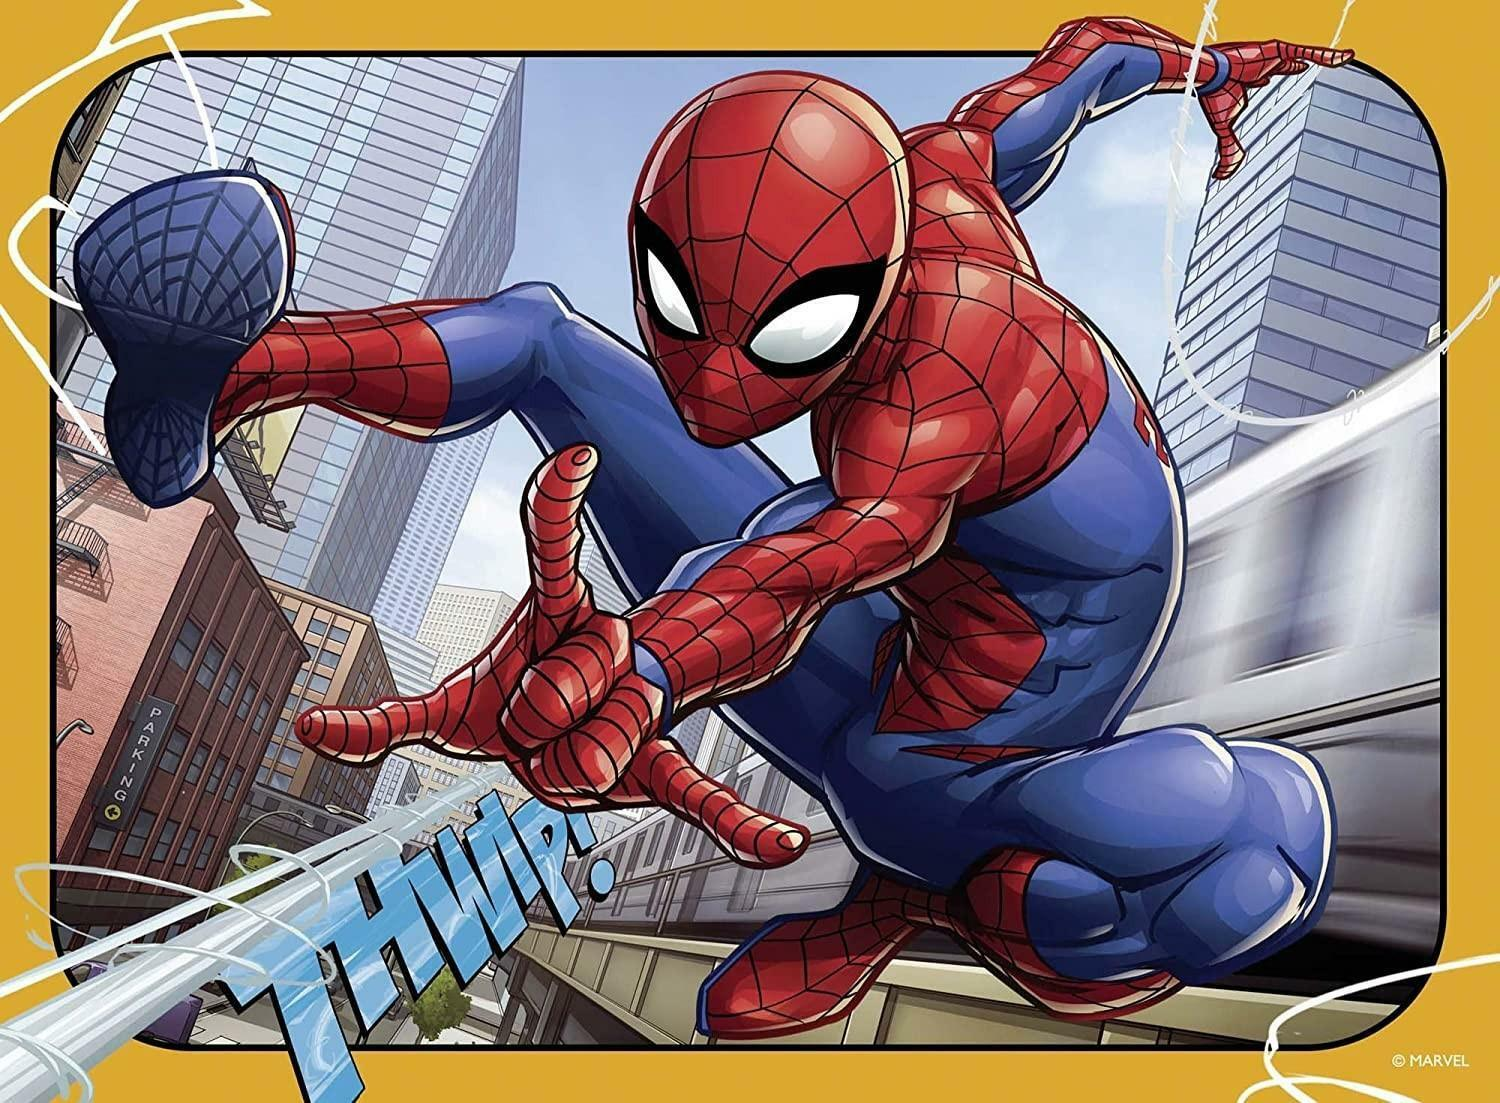 ravensburger ravensburger puzzle 4 in 1 - spiderman